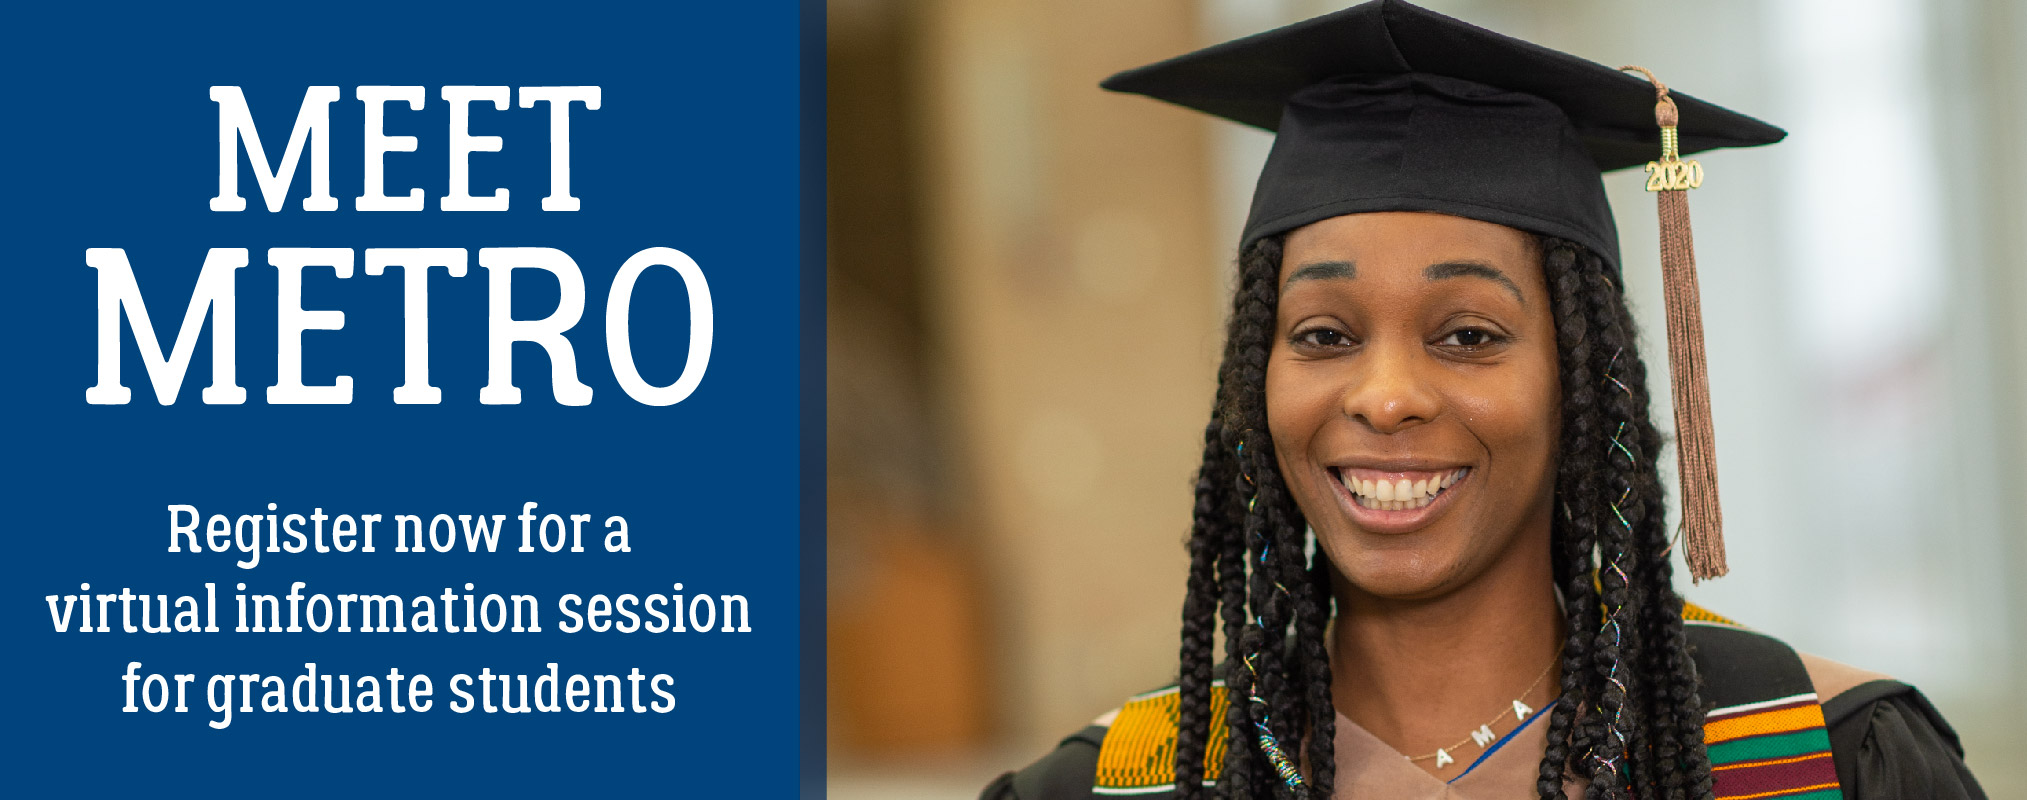 text on left, Meet Metro Register now for a virtual information session for graduate students, with a photo of a smiling female of color graduate